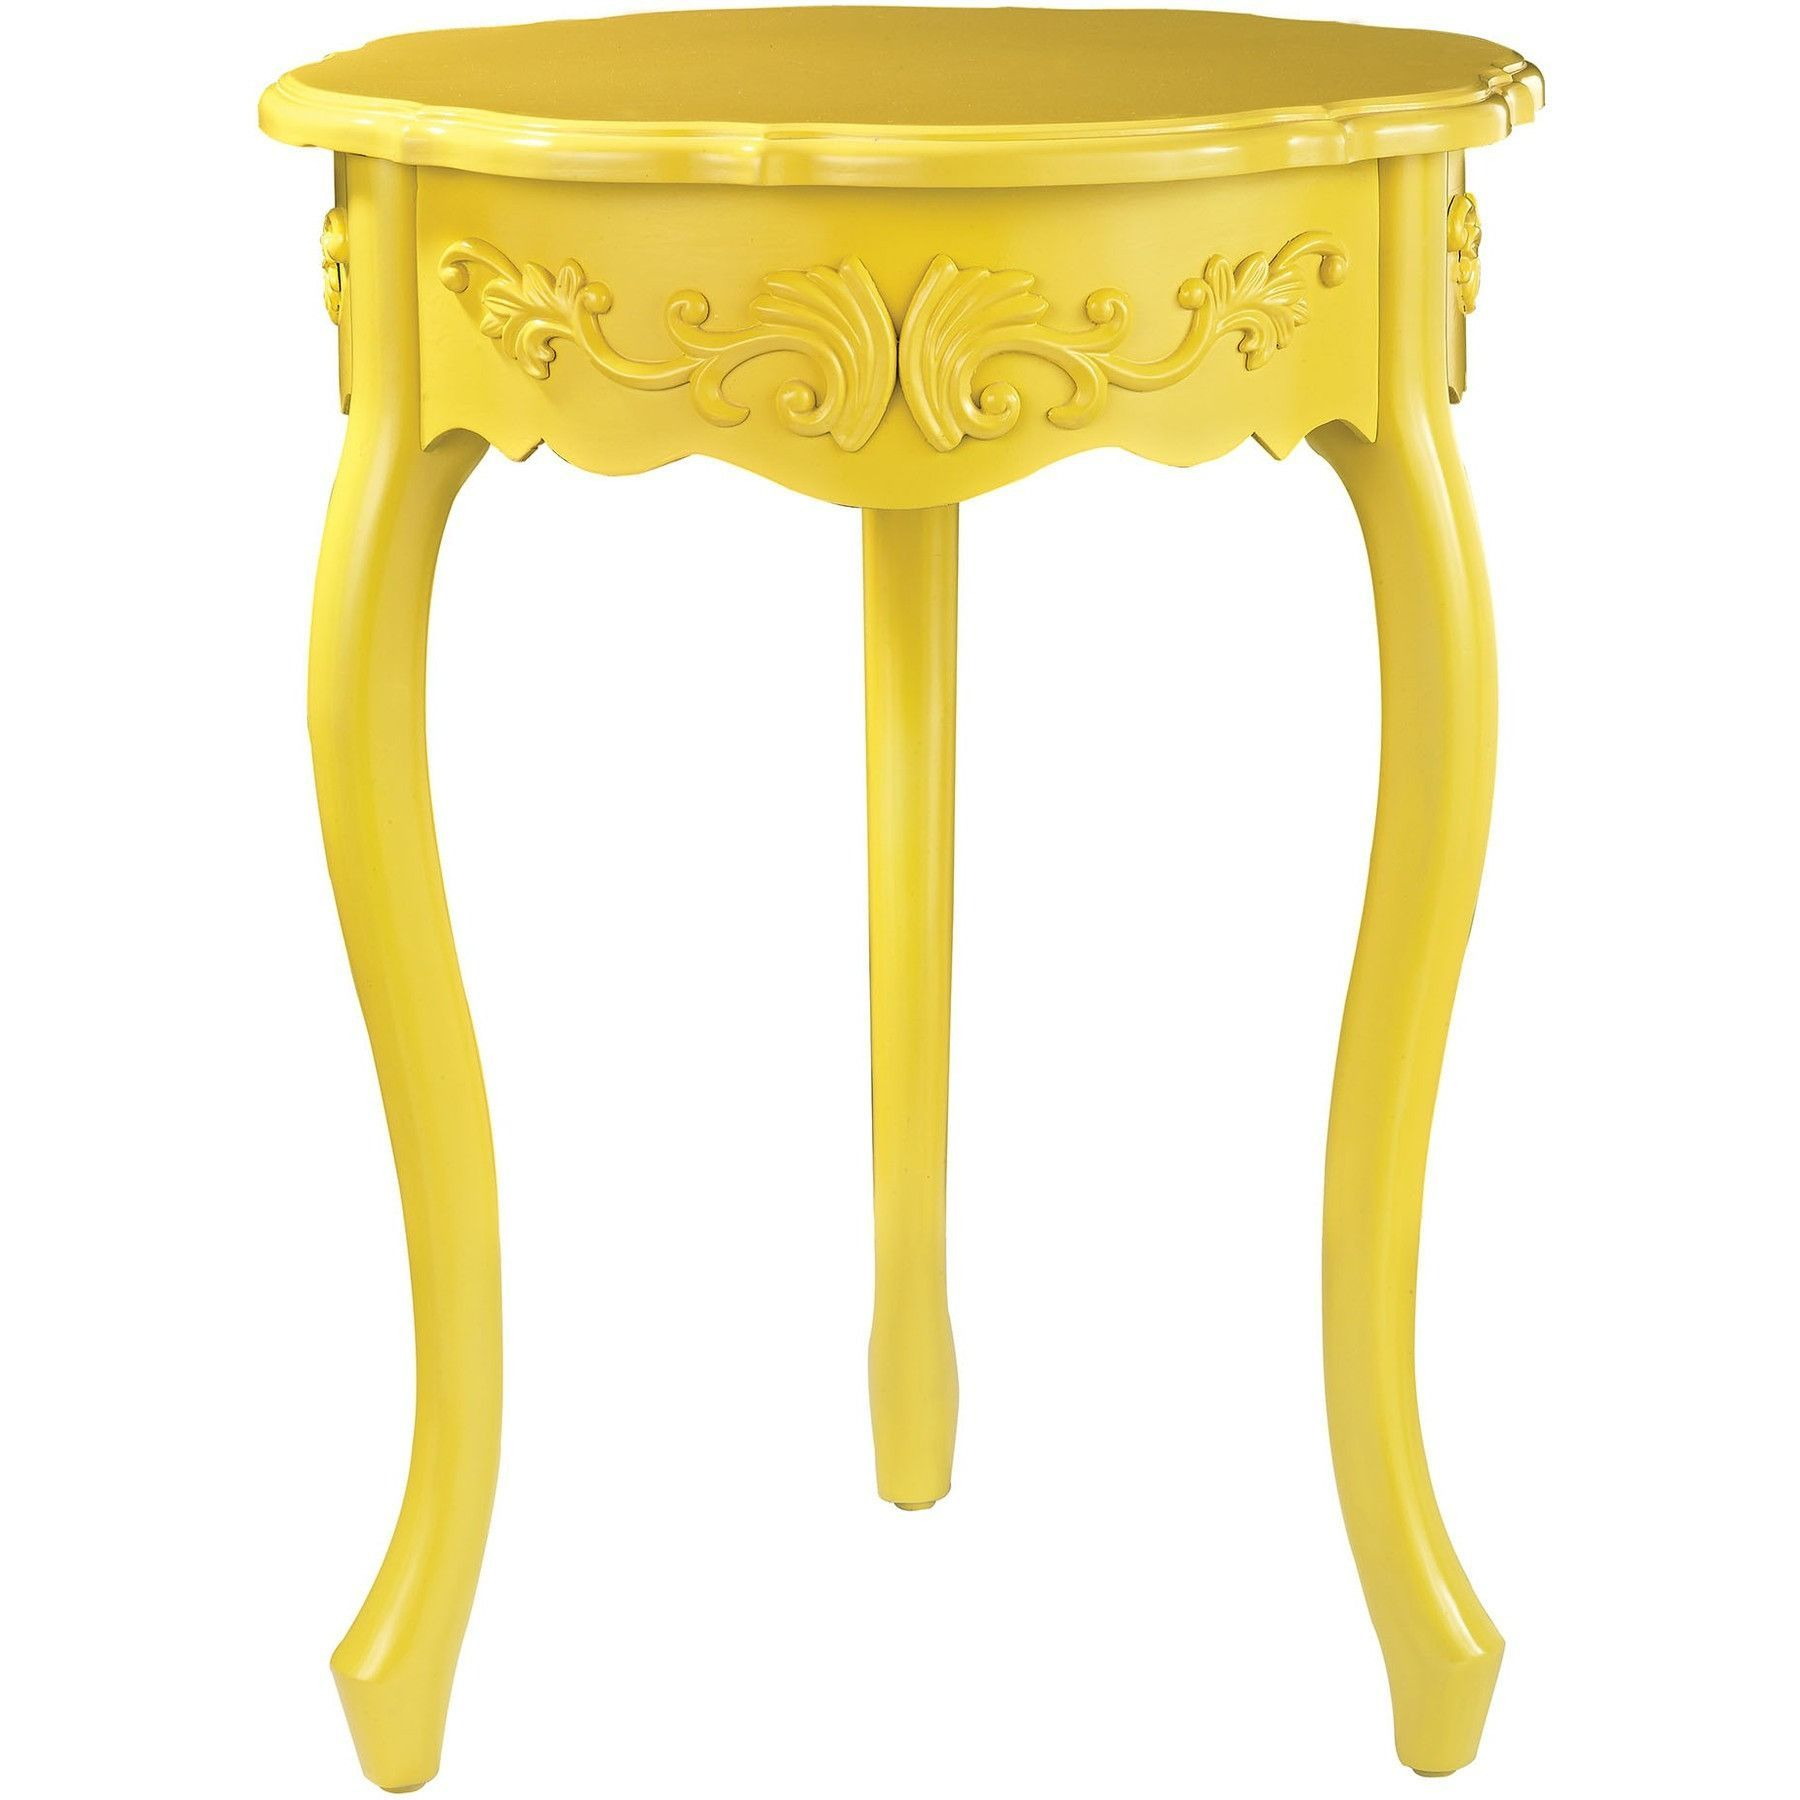 lovecup accent table yellow item products threshold margate coffee fold top expandable console dining contemporary trestle insulated ice bucket target throw rugs ikea garden bench